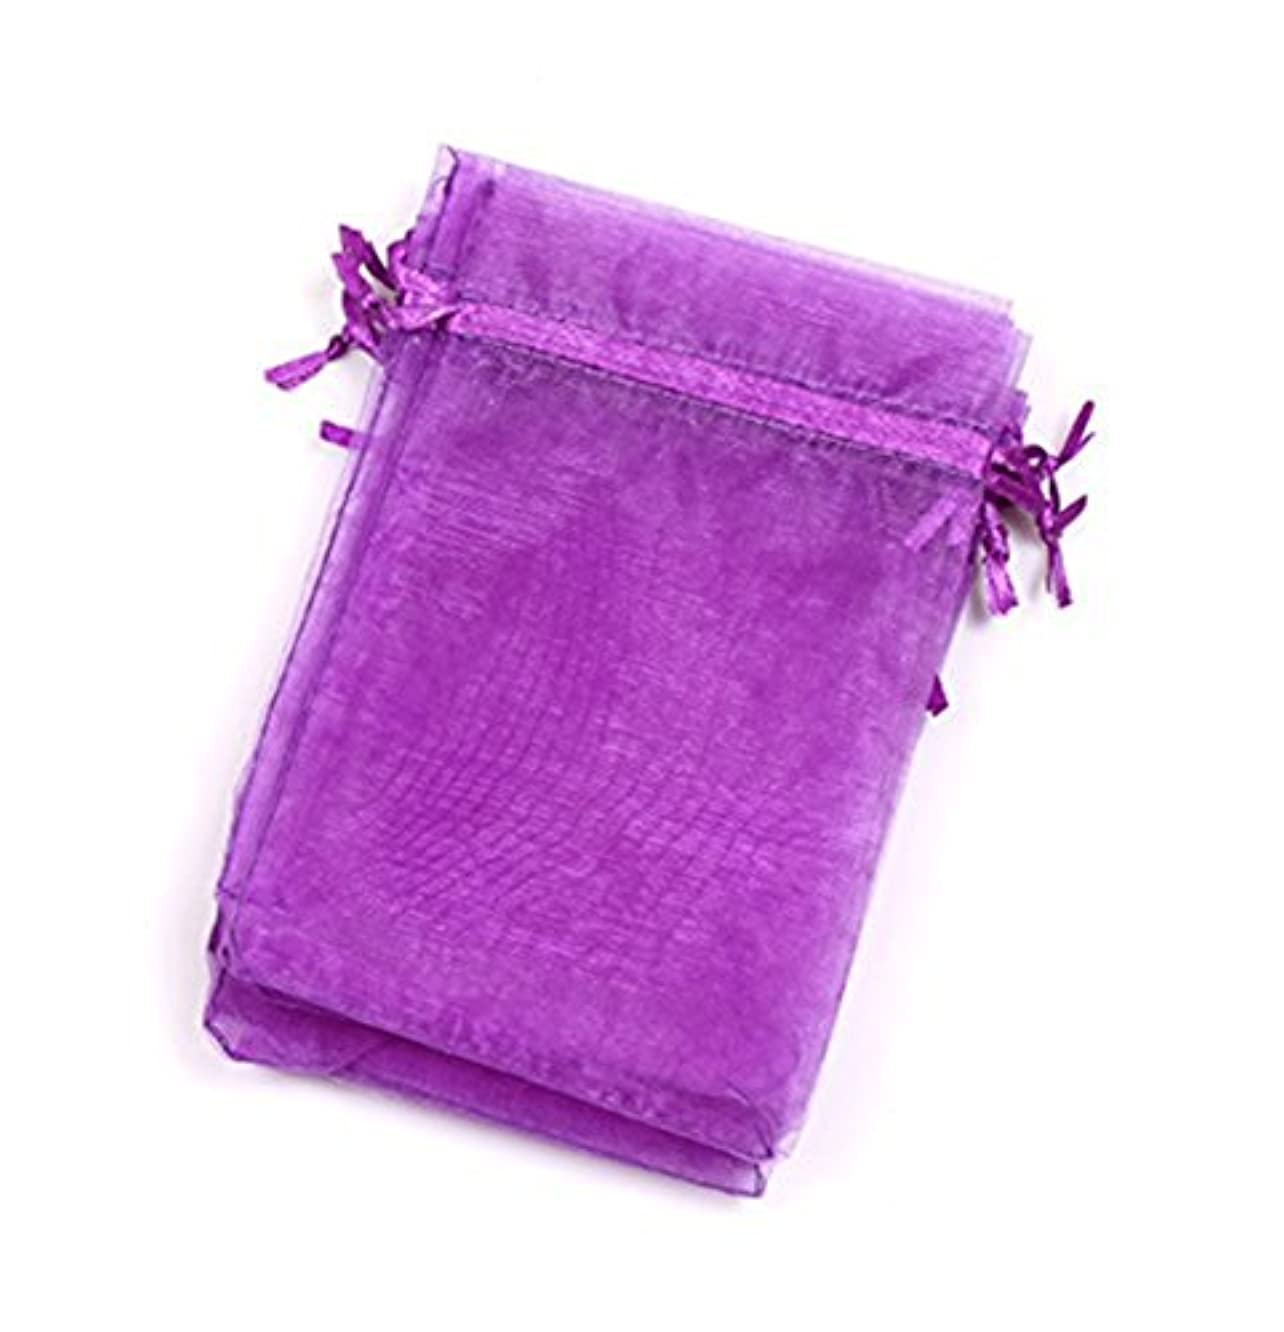 EDENKISS Purple Color Drawstring Organza Jewelry Pouch Bags 2.8x3.6